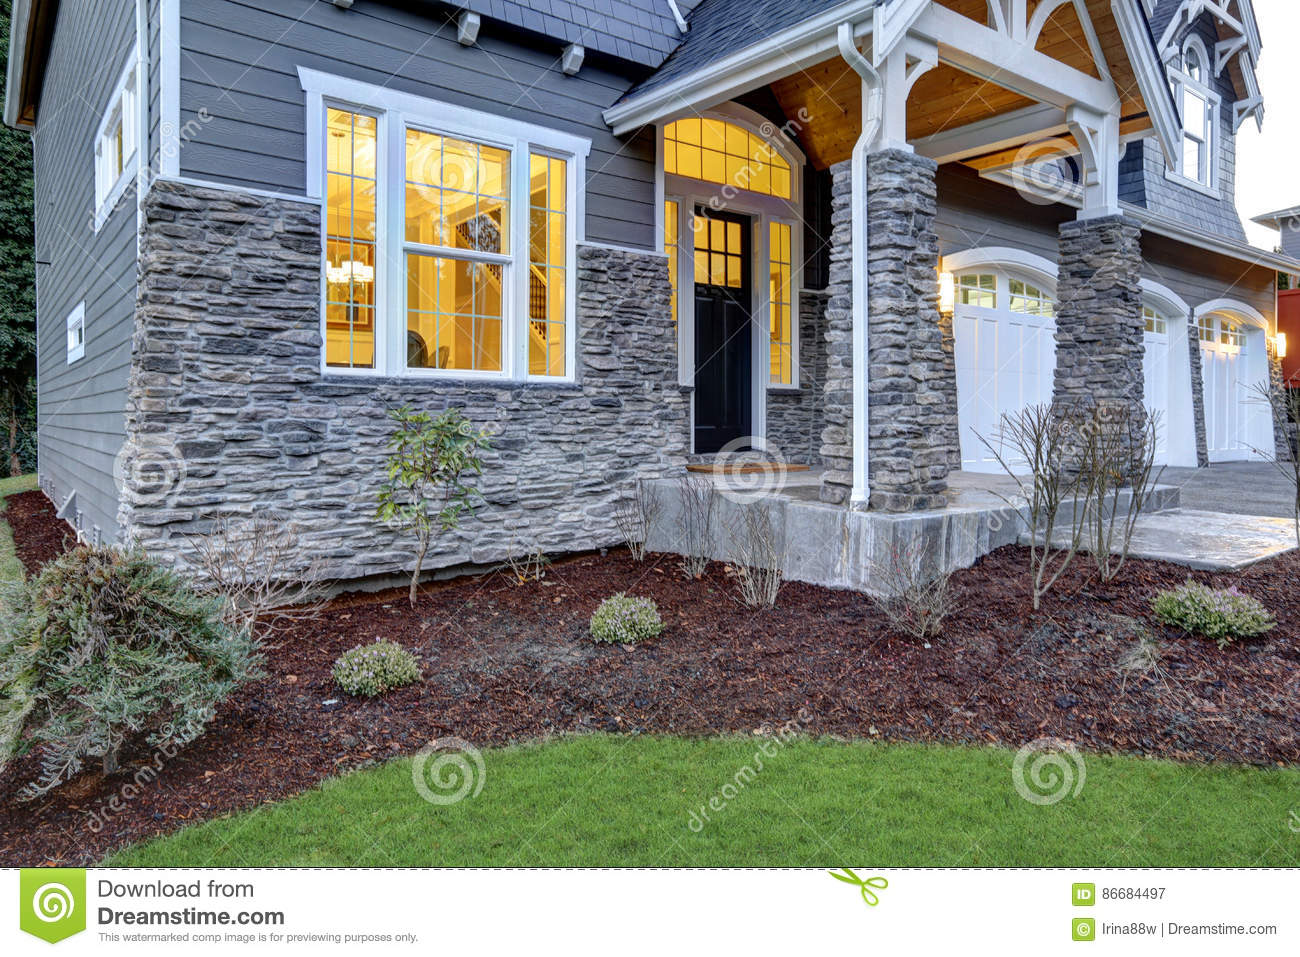 Front Covered Porch Design With Stone Columns Stock Image - Image of on front entrance way designs, stone garage designs, stone bedroom designs, stone deck designs, front door entrance designs, stone yard designs, deck entrance designs, stone interior designs, stone wall designs, rock entrance designs, stone pond designs, stone garden designs, front step designs, driveway entrance designs, neighborhood entrance designs, front entry designs, brick entrance designs, entrance landscape designs, stone patio designs, subdivision entrance designs,